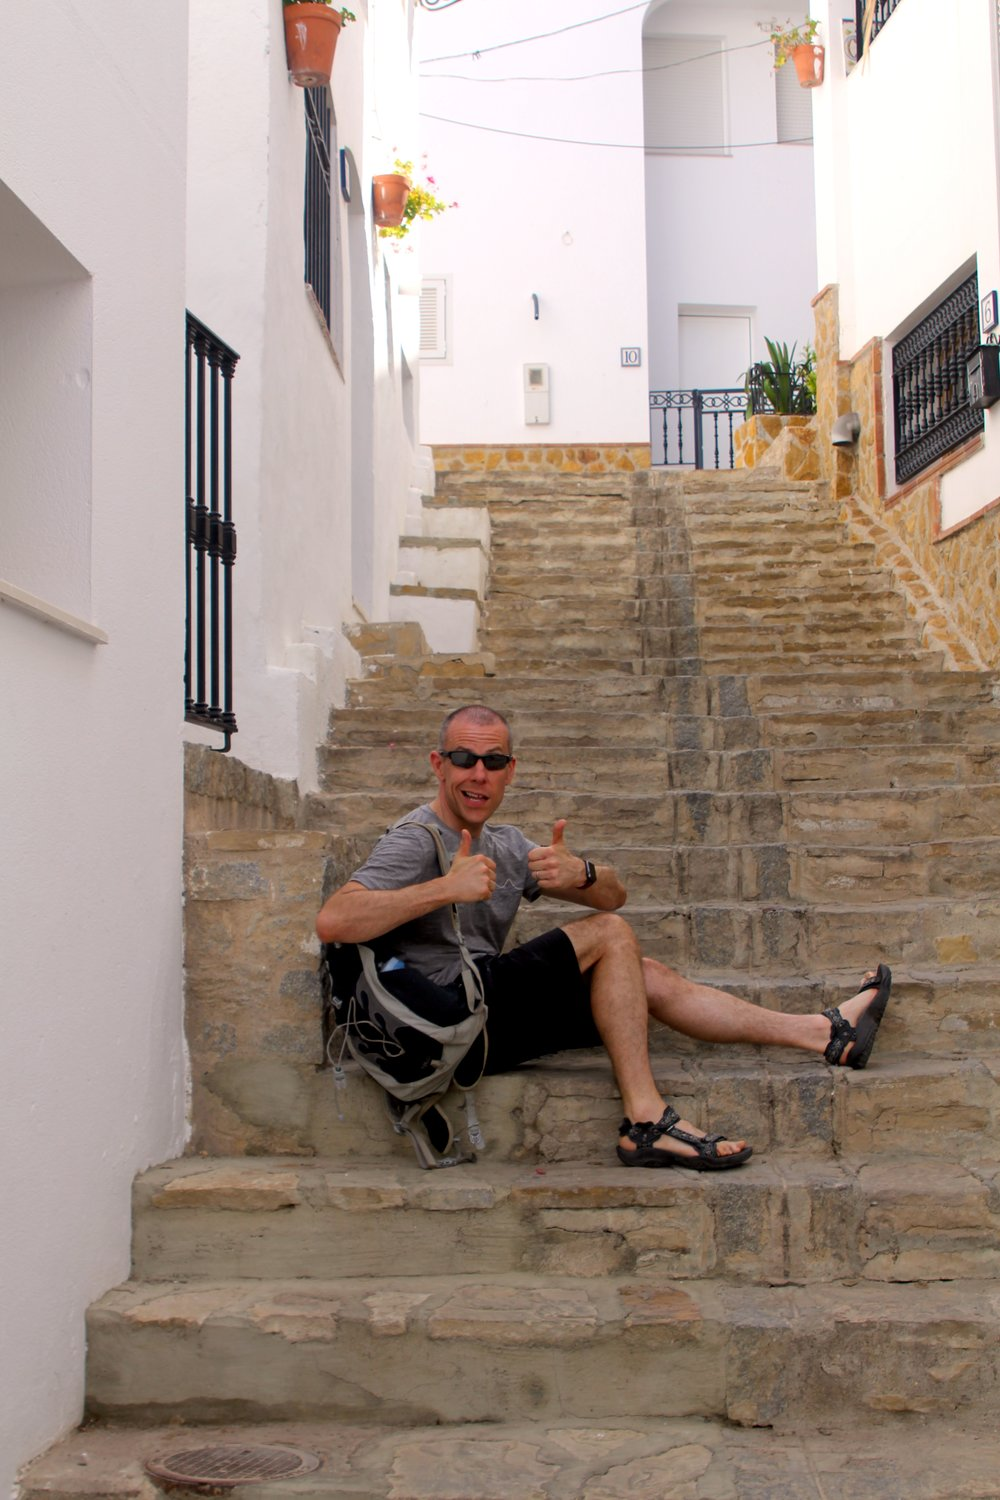 my dad posing on one of the many sets of stairs we climbed up - definitely my favourite picture of the day!